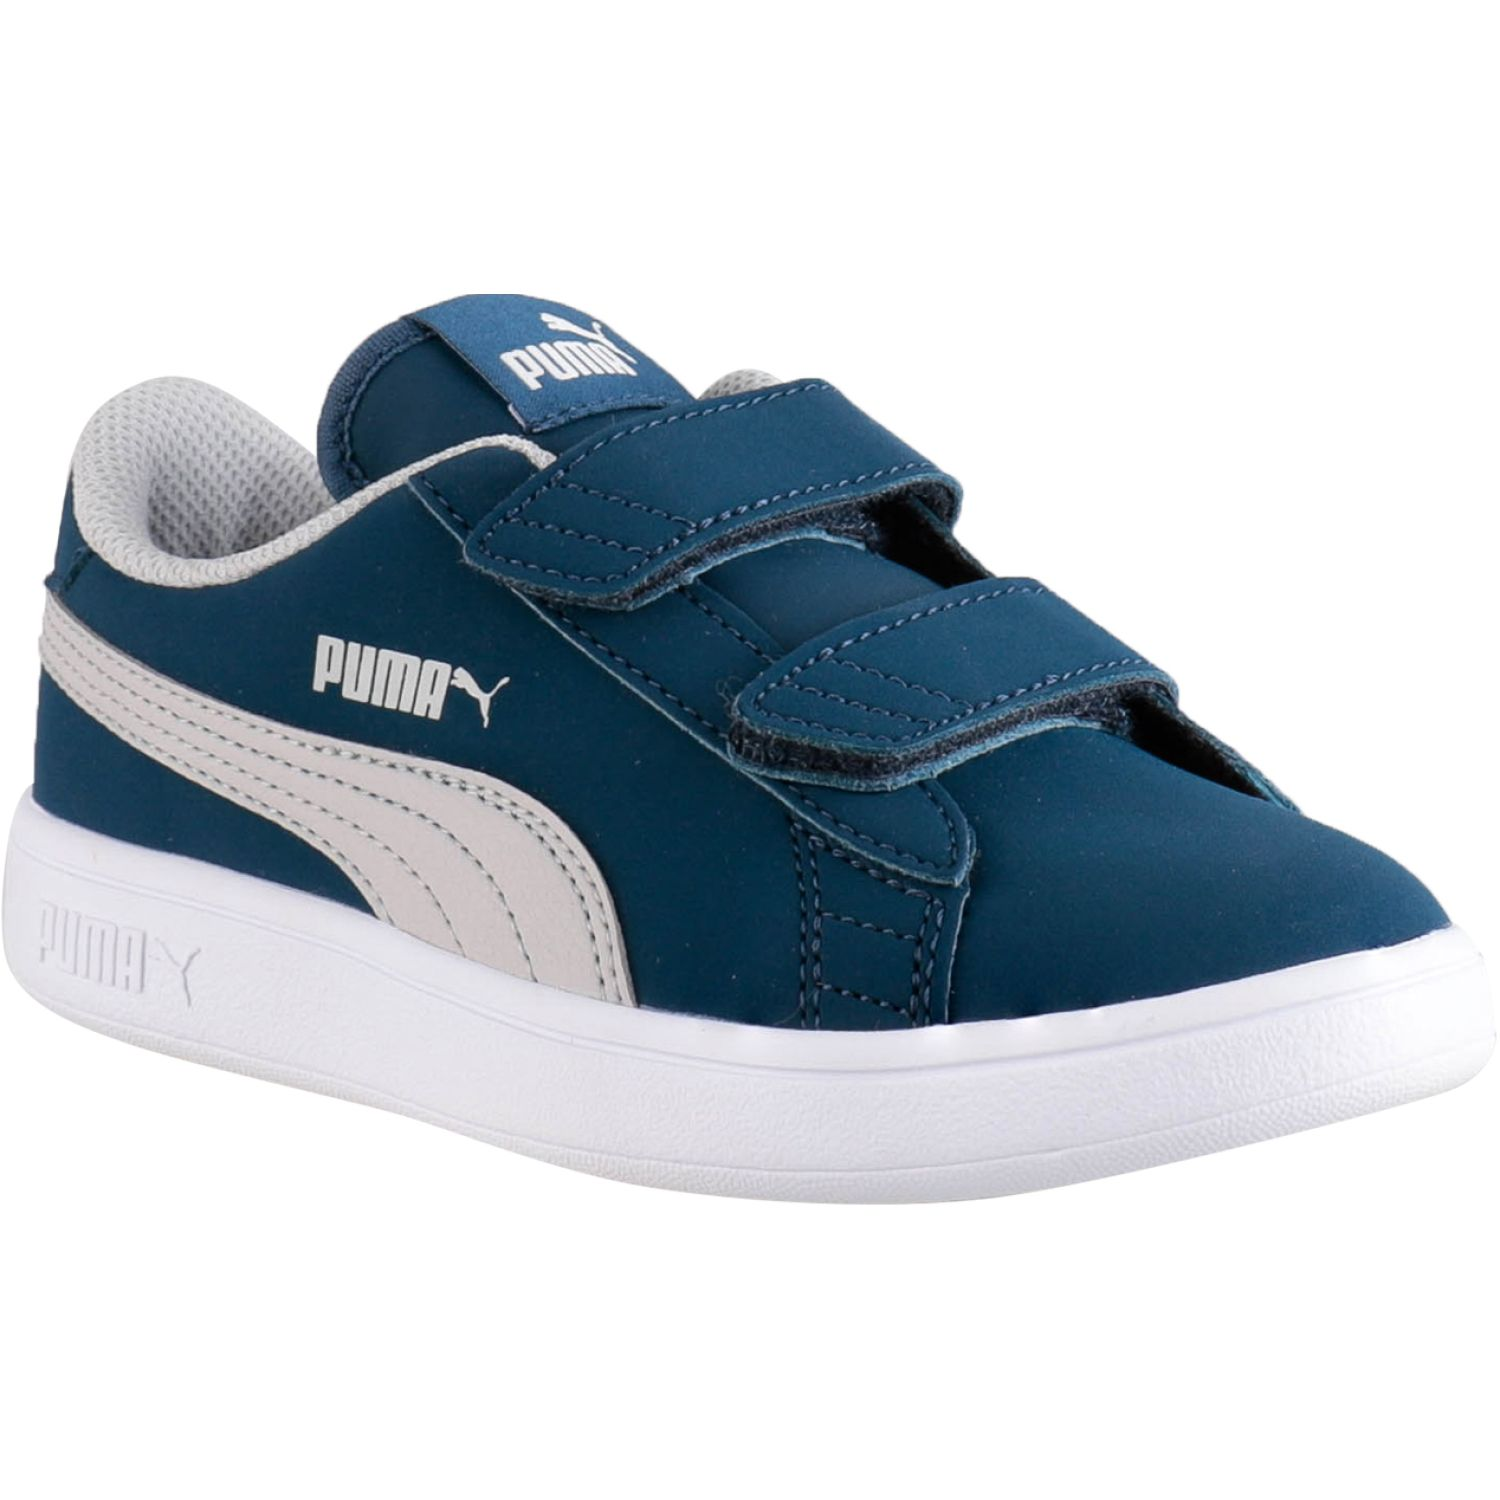 Puma puma smash v2 buck v ps Turquesa Walking